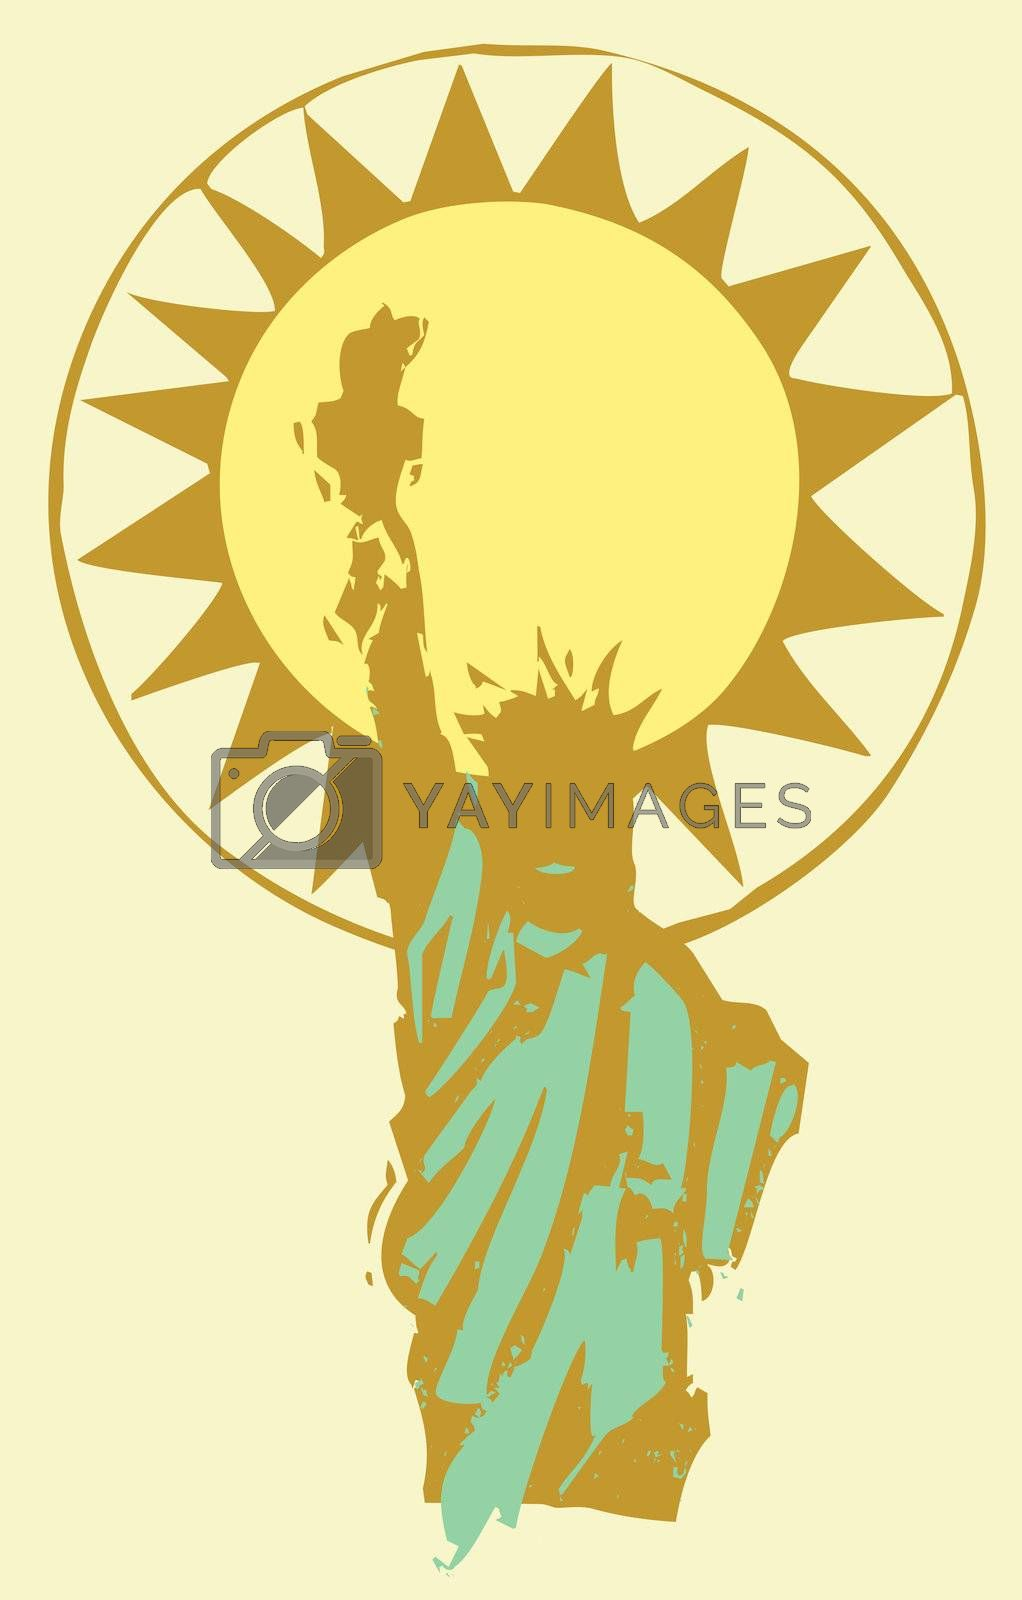 Statue of Liberty in shadow with the sun behind it.